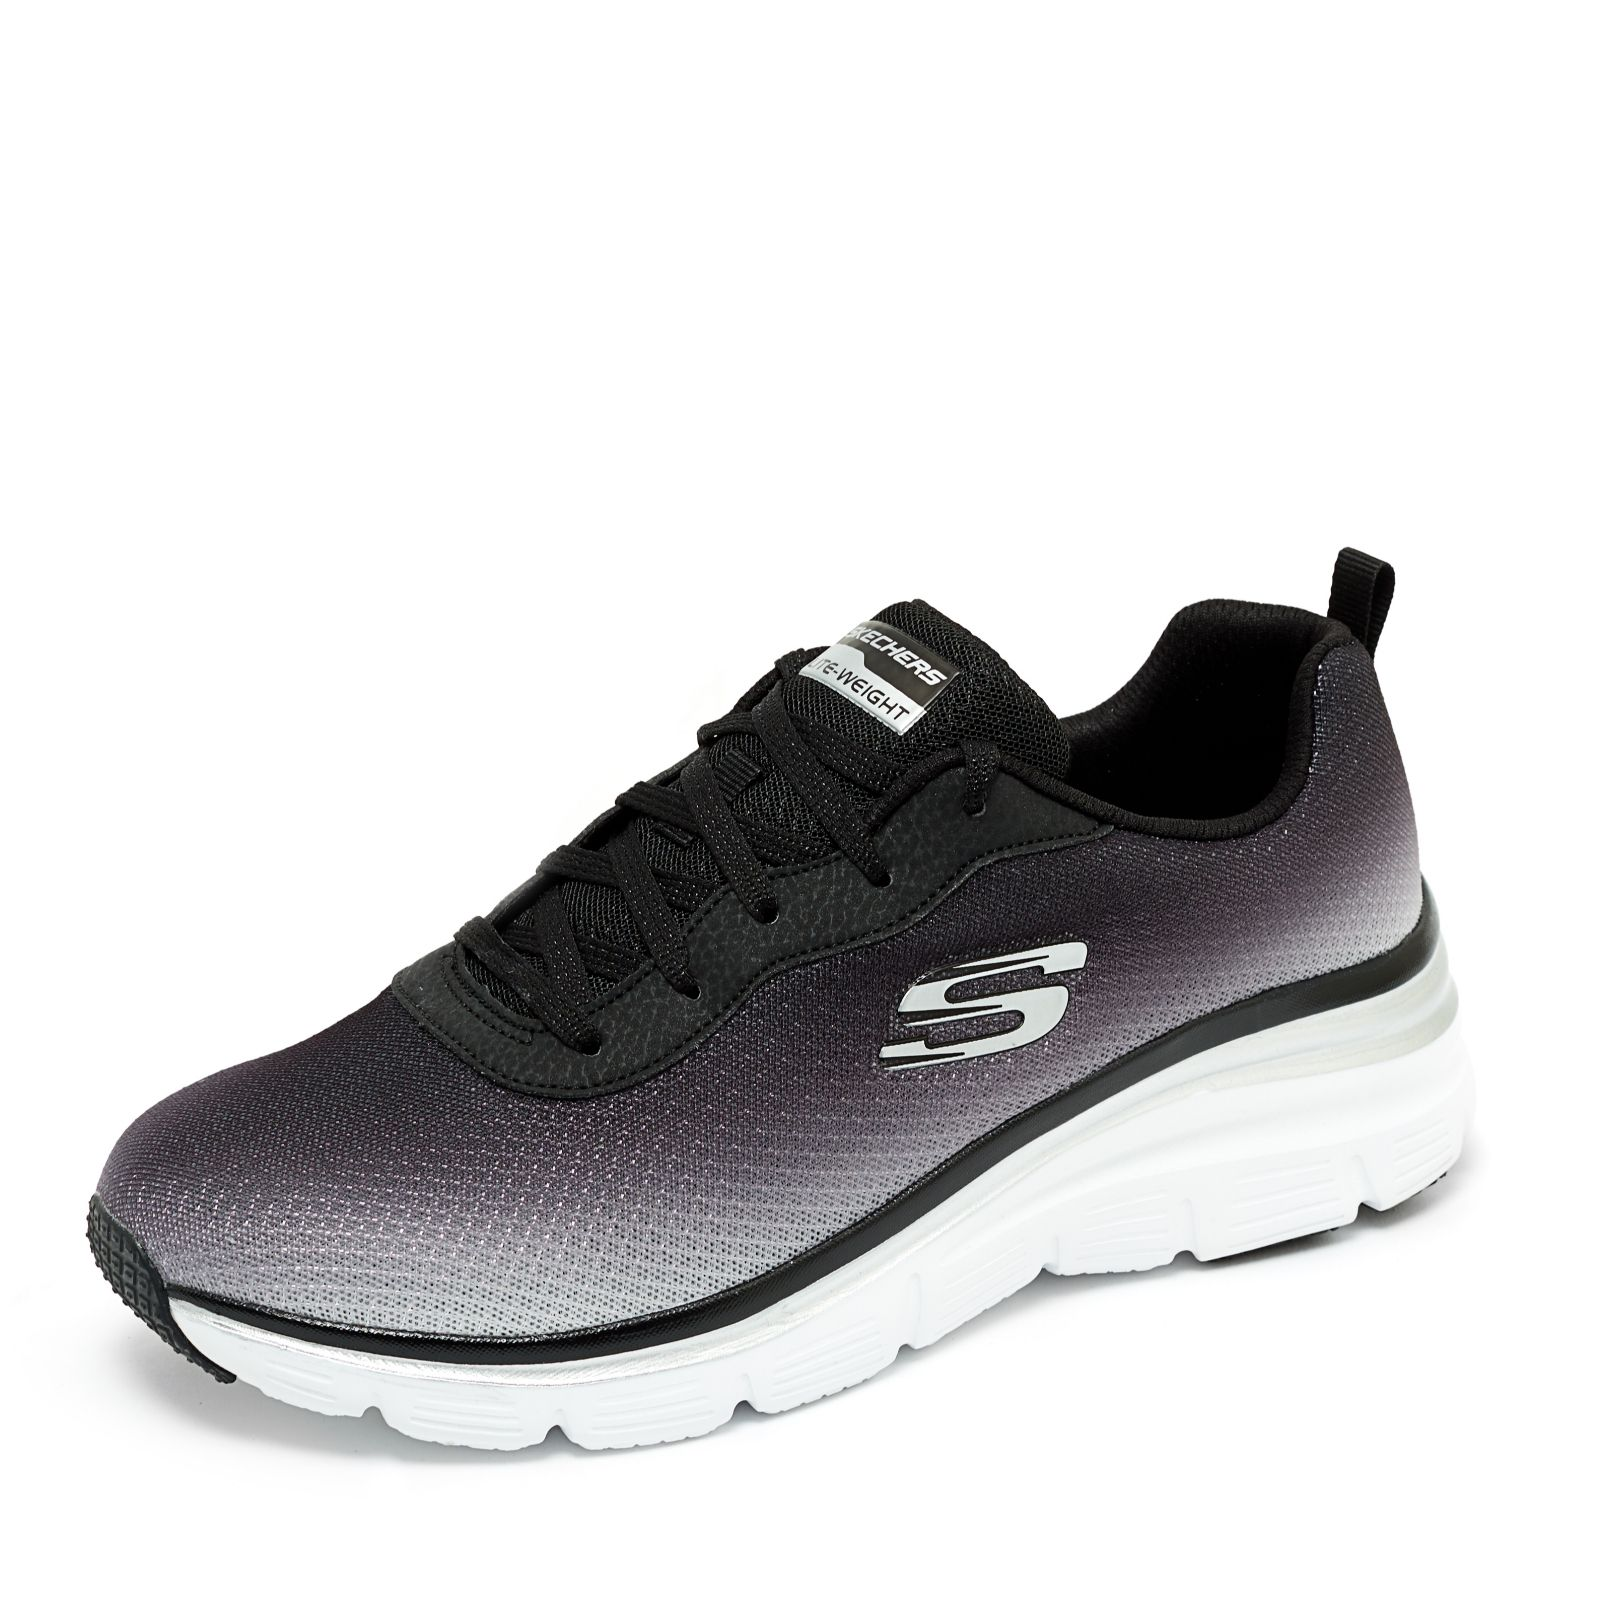 low priced a3050 23272 Skechers Sports Ombre Fashion Chunky Lace Up Trainer - QVC UK